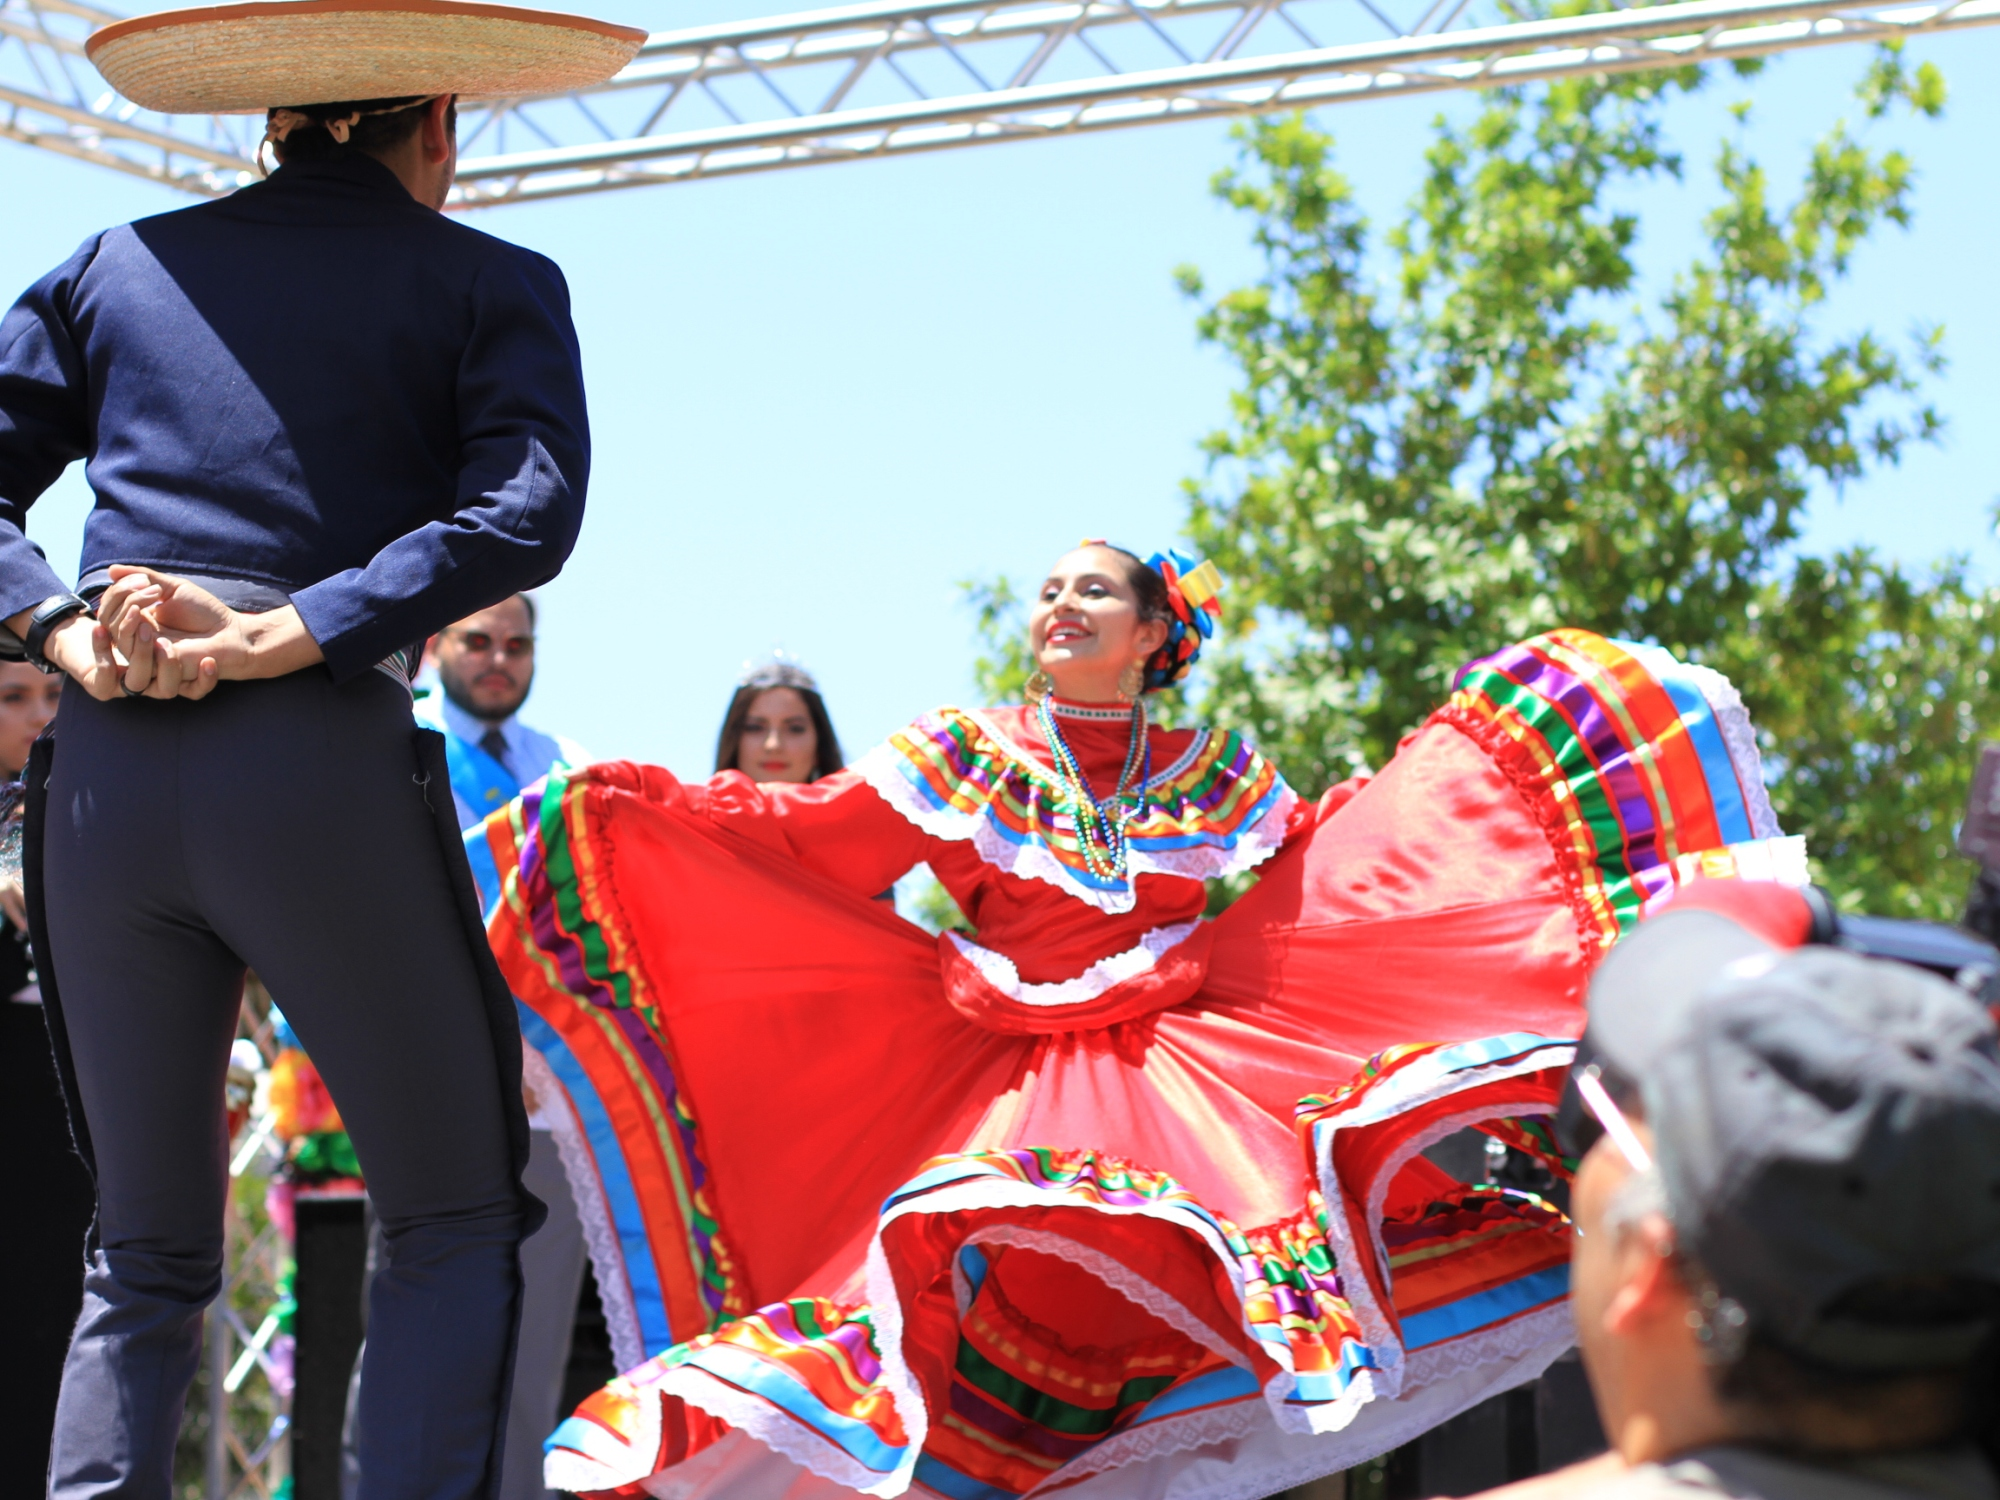 Photo of folklorico dancers at PACfest 2016.